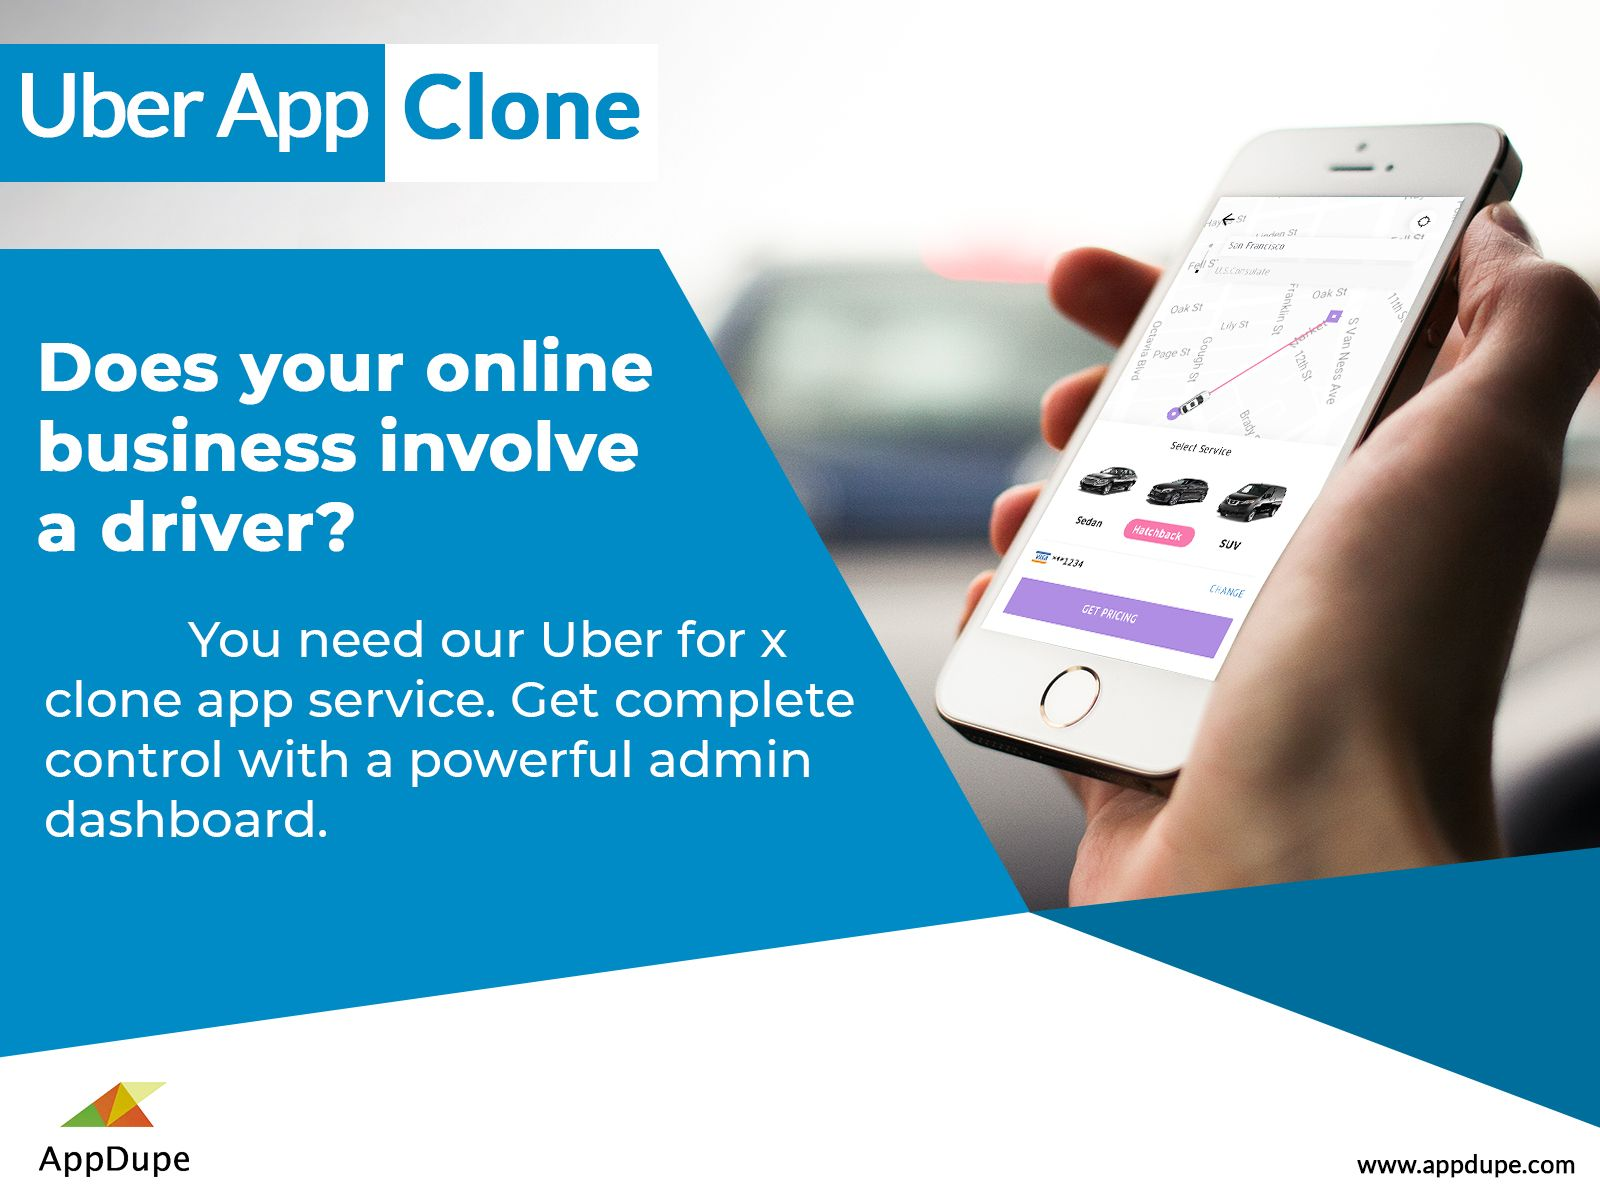 Appdupe's Uber clone is now available at an affordable price within